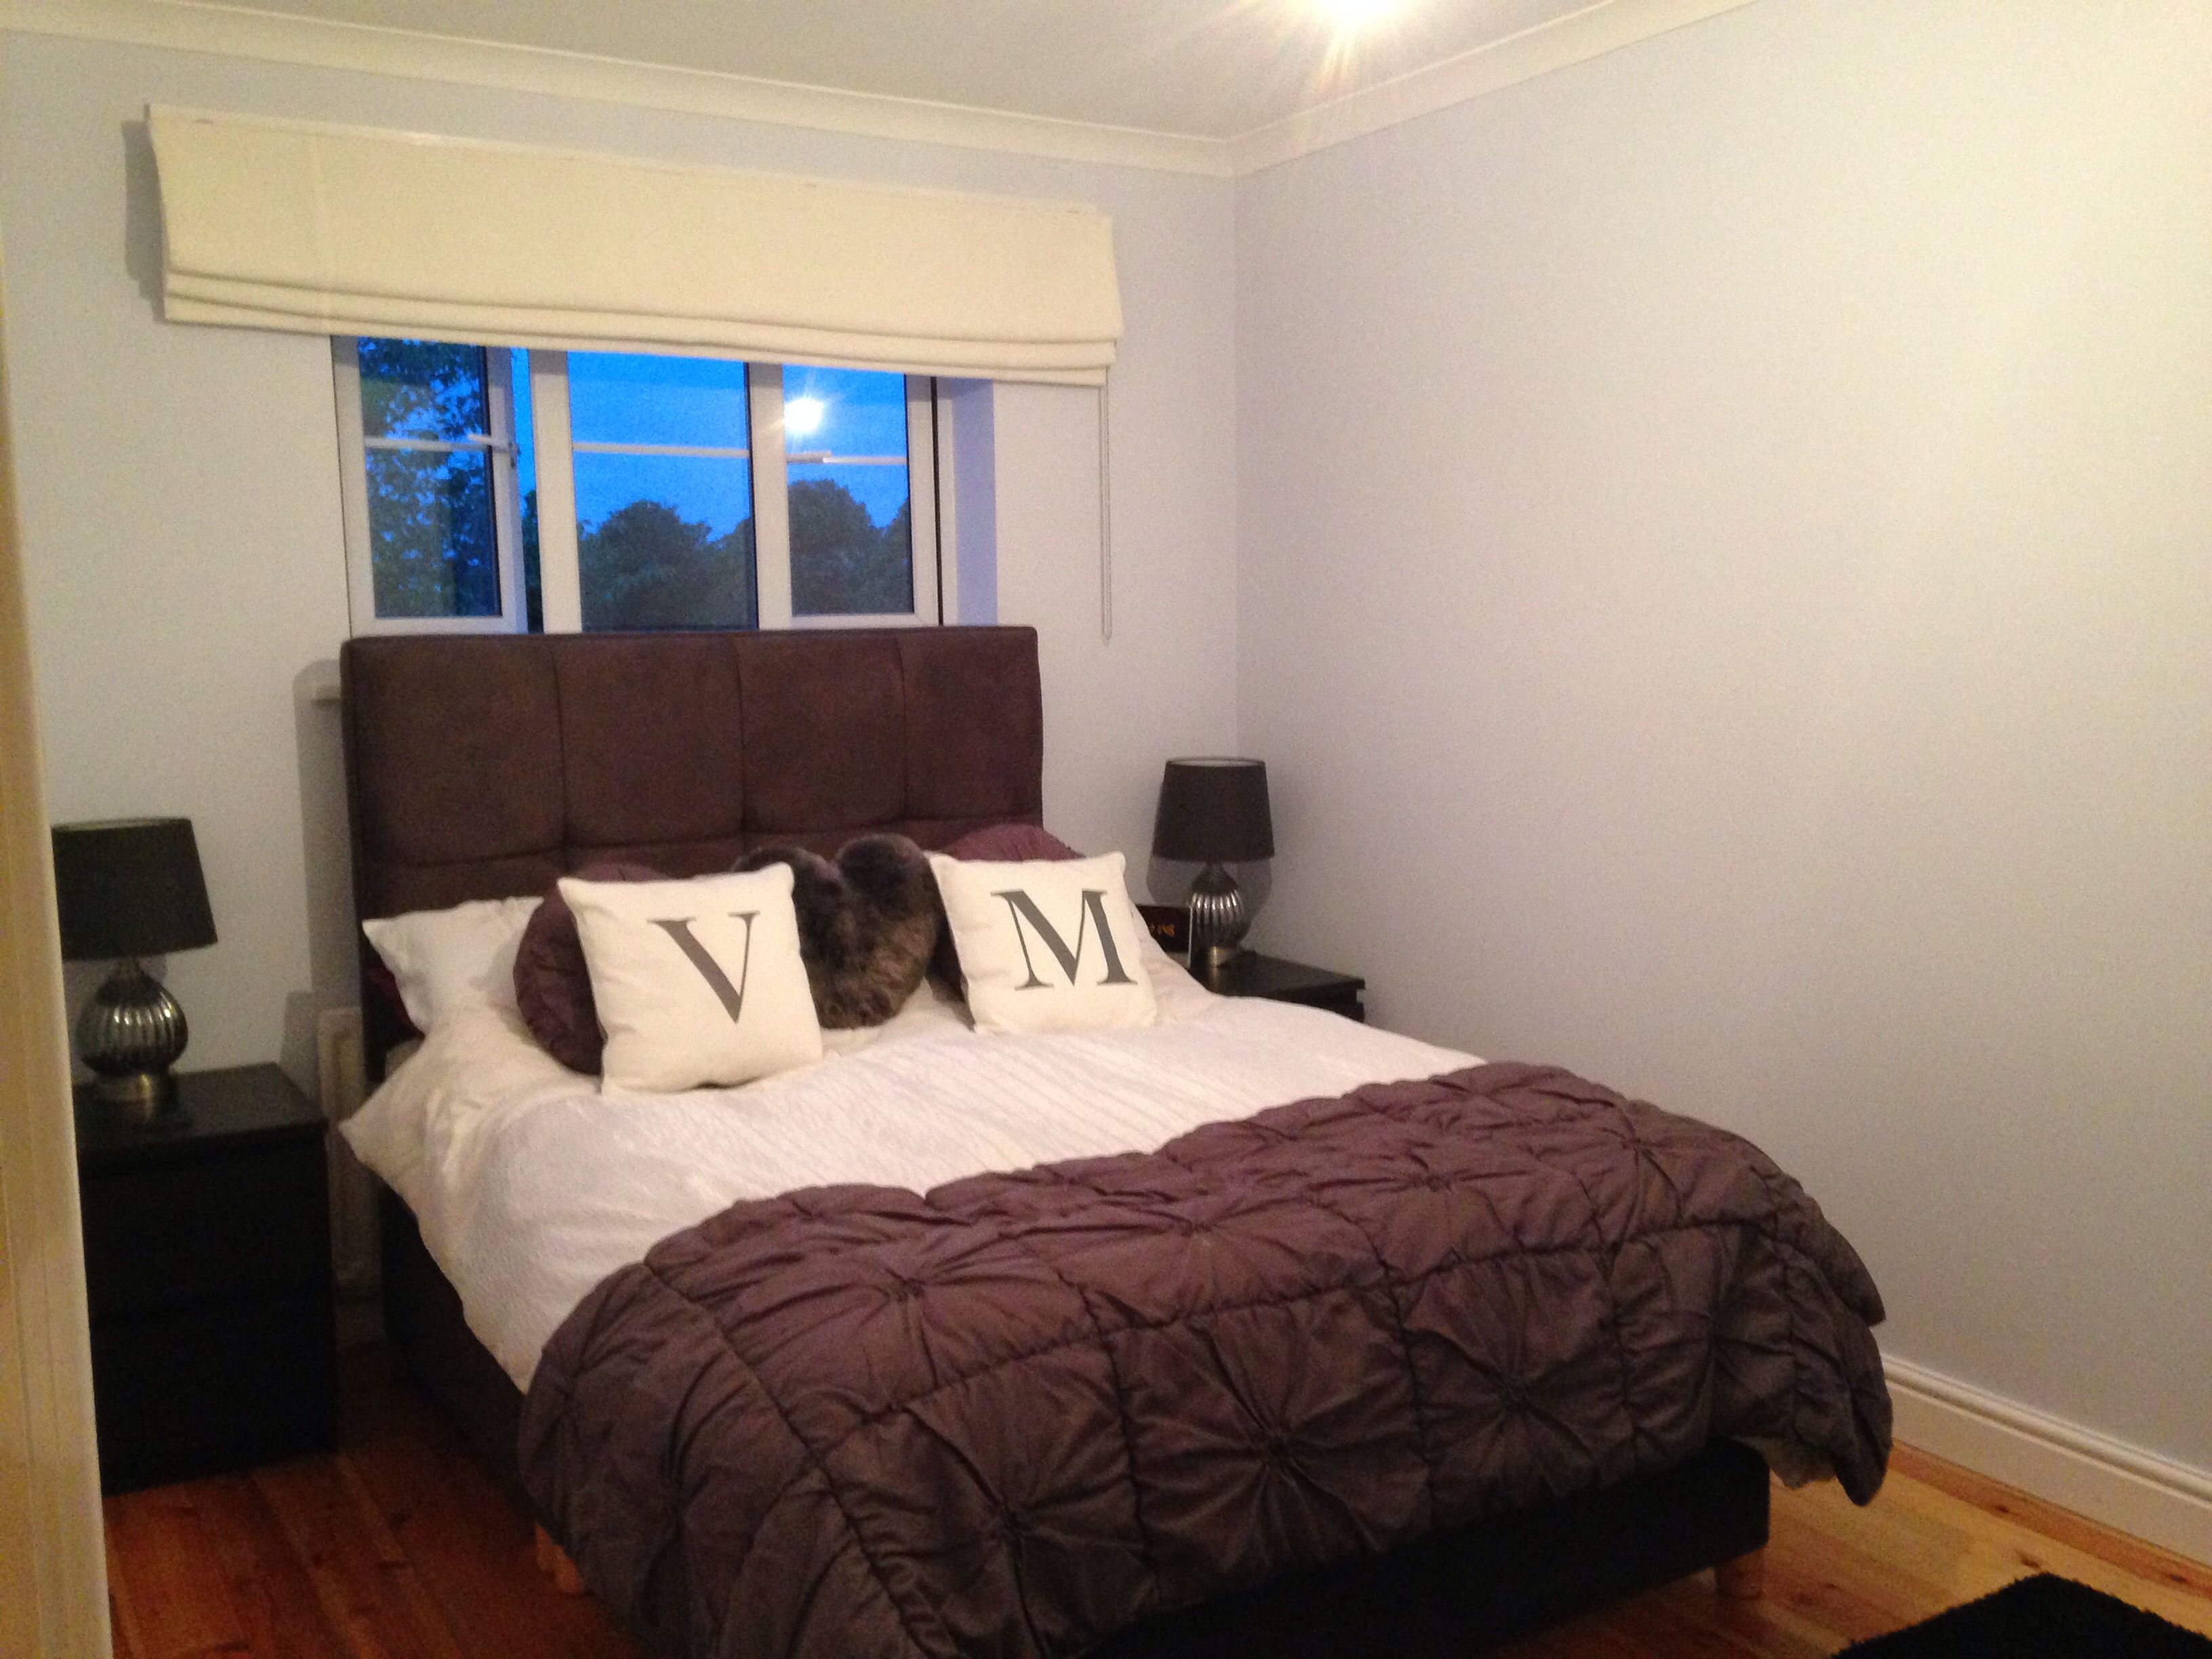 Dulux Kids Bedroom In A Box: Bedroom Painted In Dulux Blueberry White